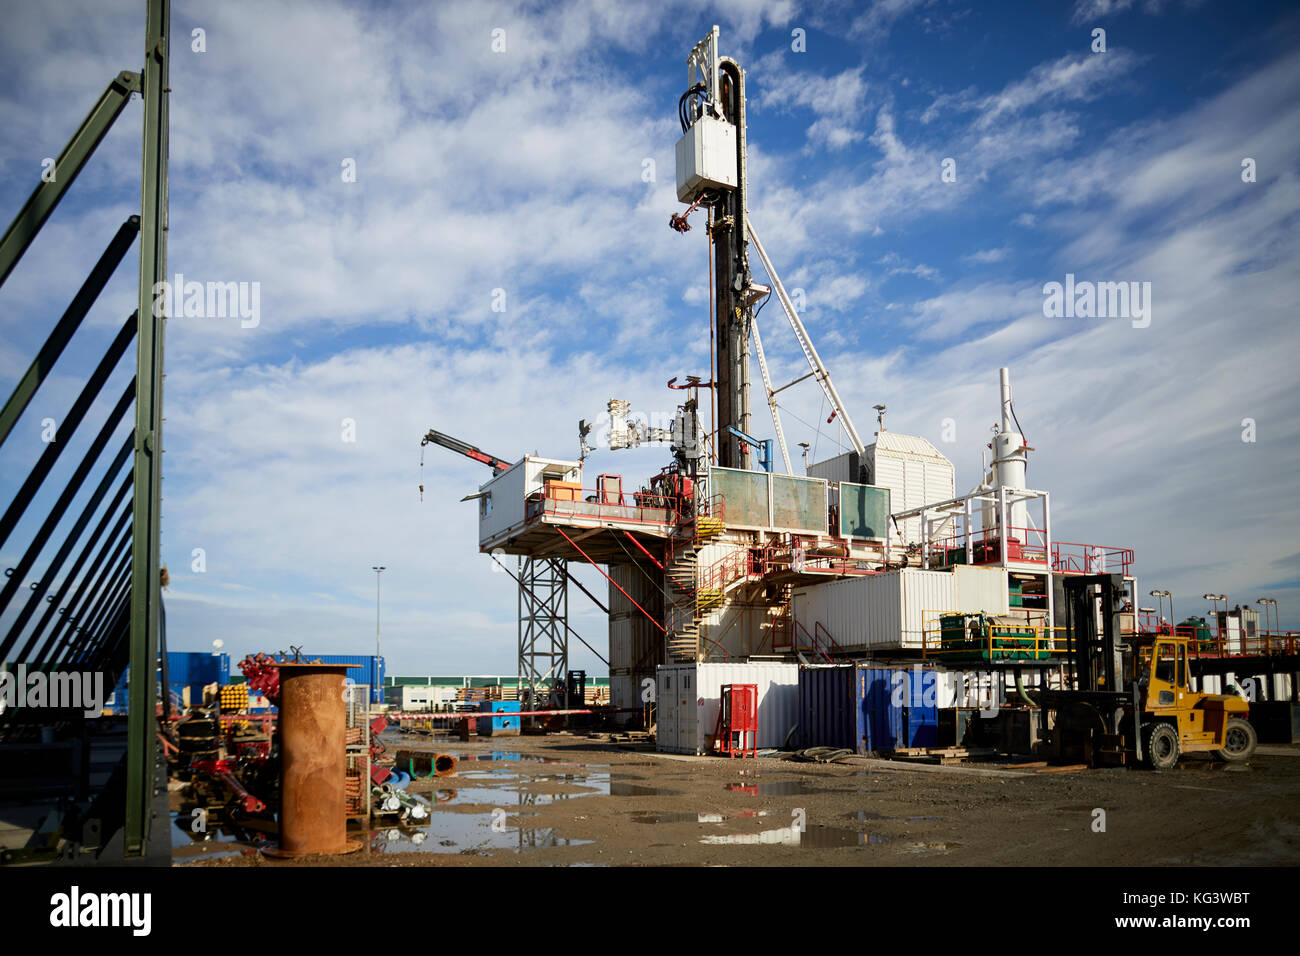 Fracking firm Cuadrilla drilling for shale gas in Lancashire, pictured The drilling well and the sound barrier - Stock Image